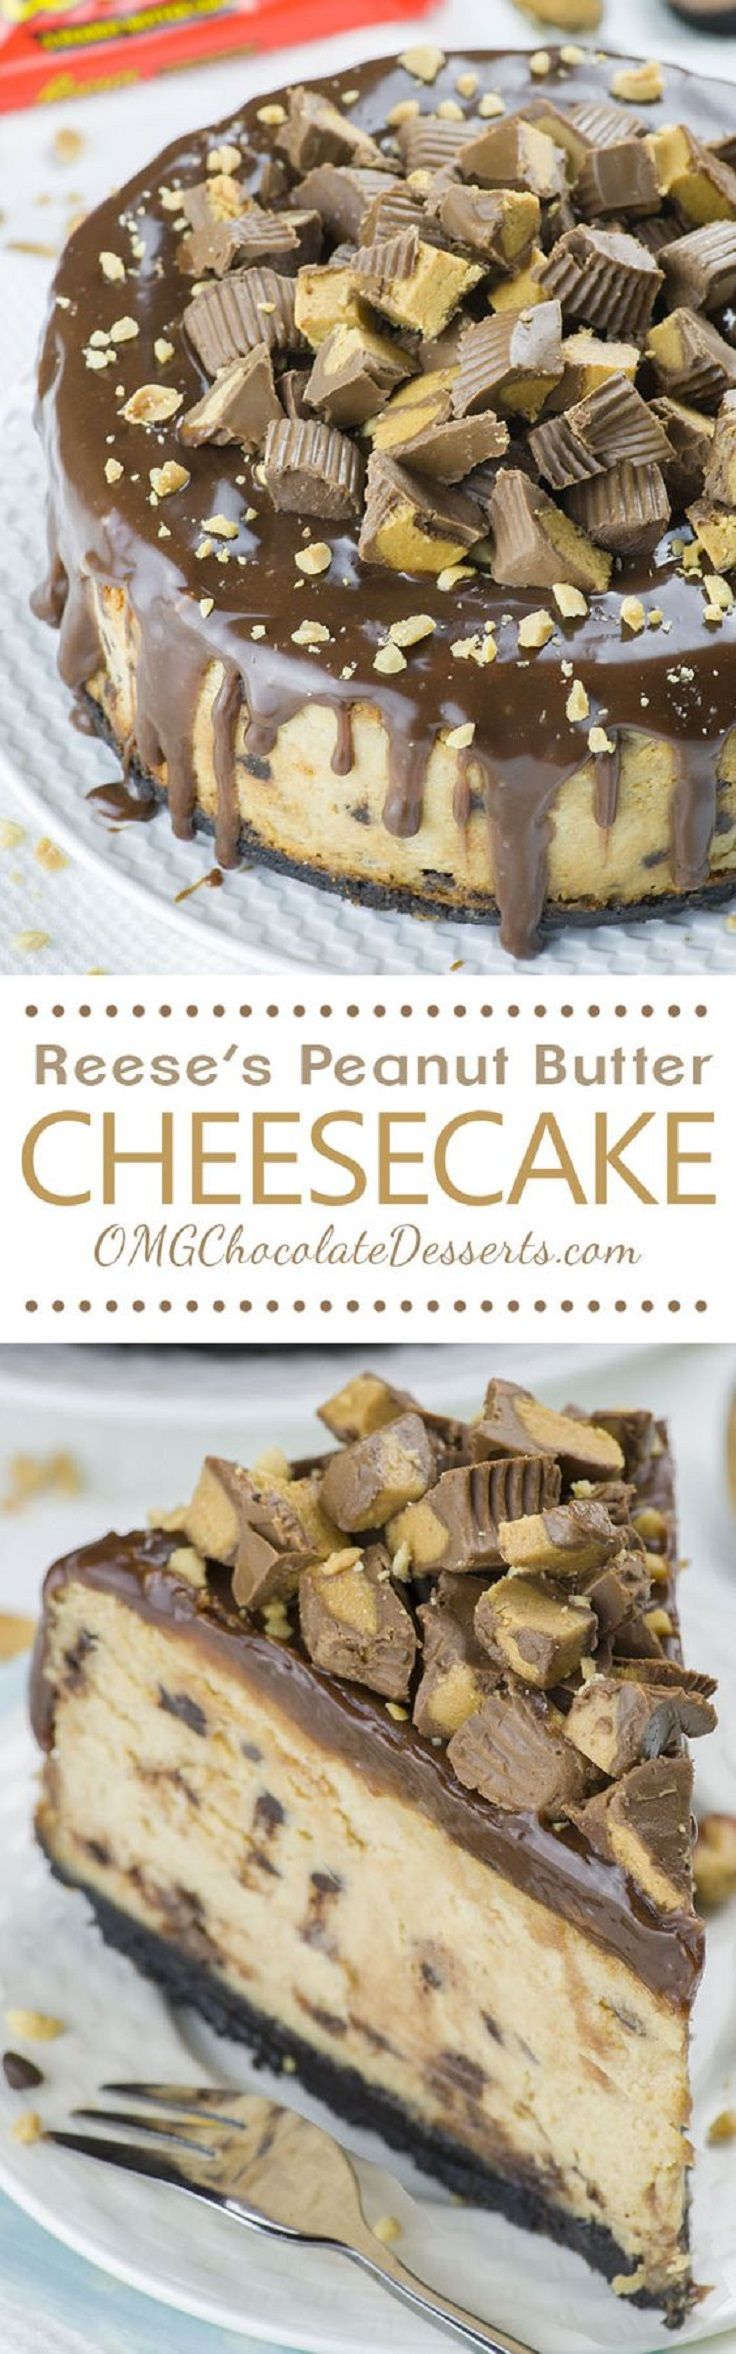 Reese's Peanut Butter Cheesecake - 14 Dainty Cheesecake Recipe Ideas for a Truly Sweet Gathering